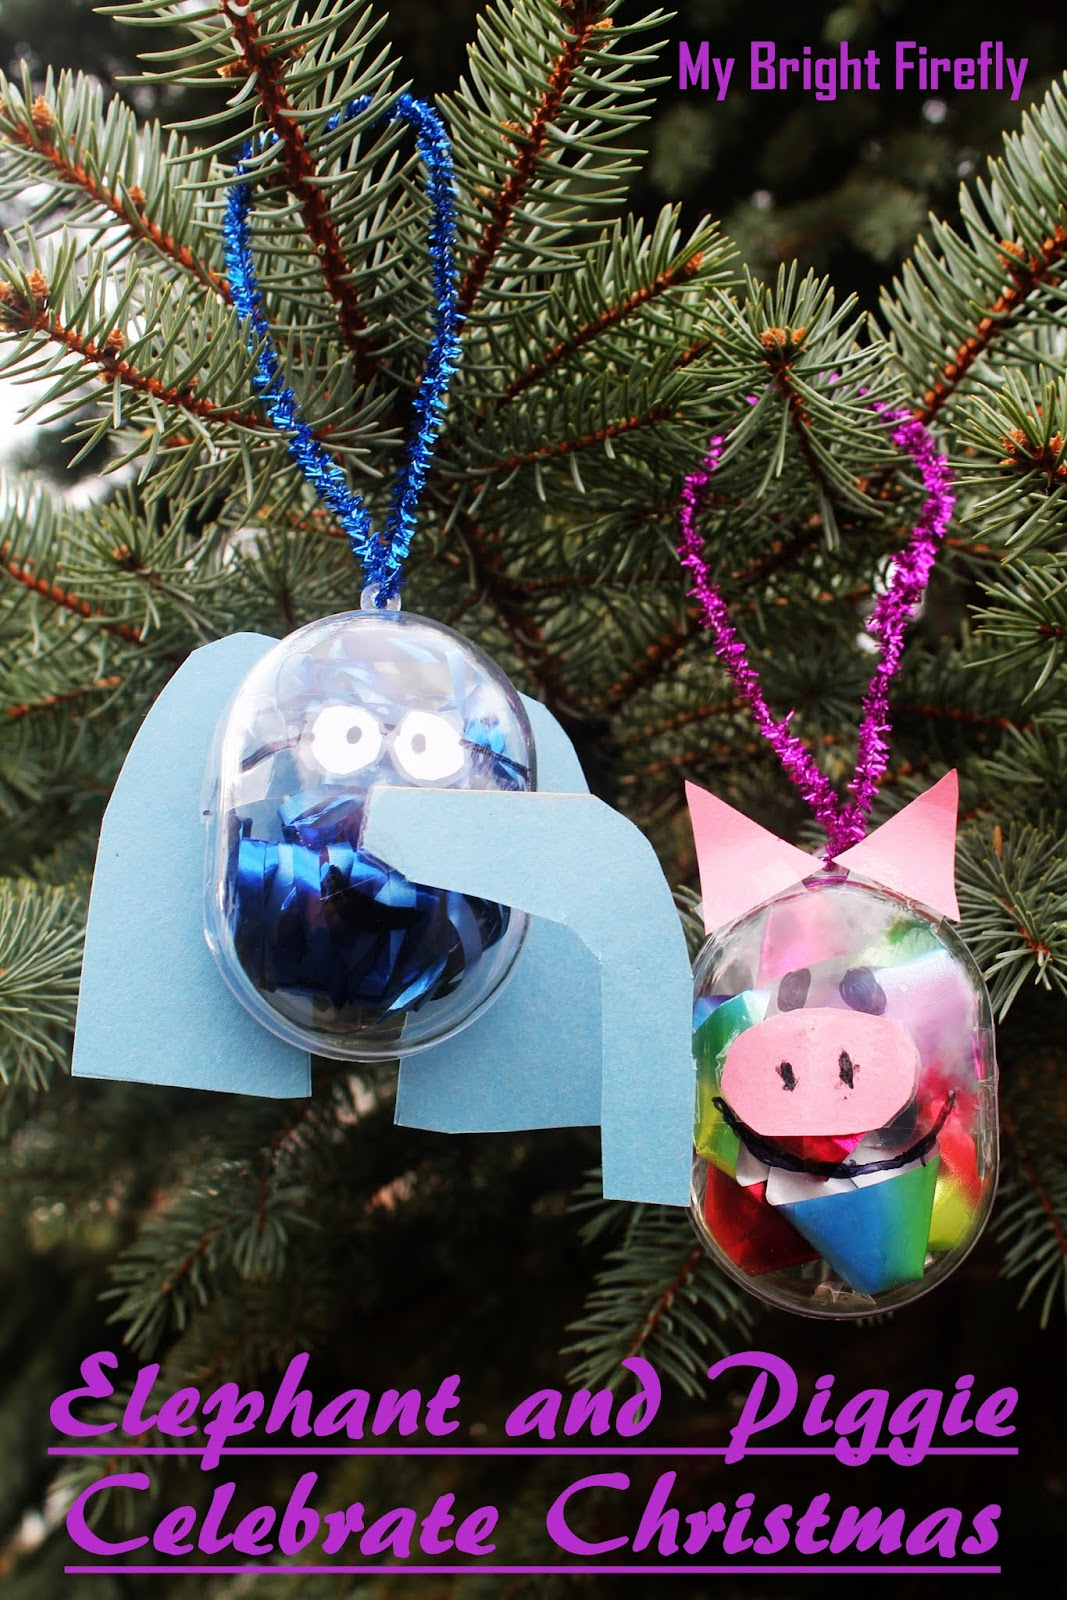 My Bright Firefly Elephant And Piggie Christmas Ornaments